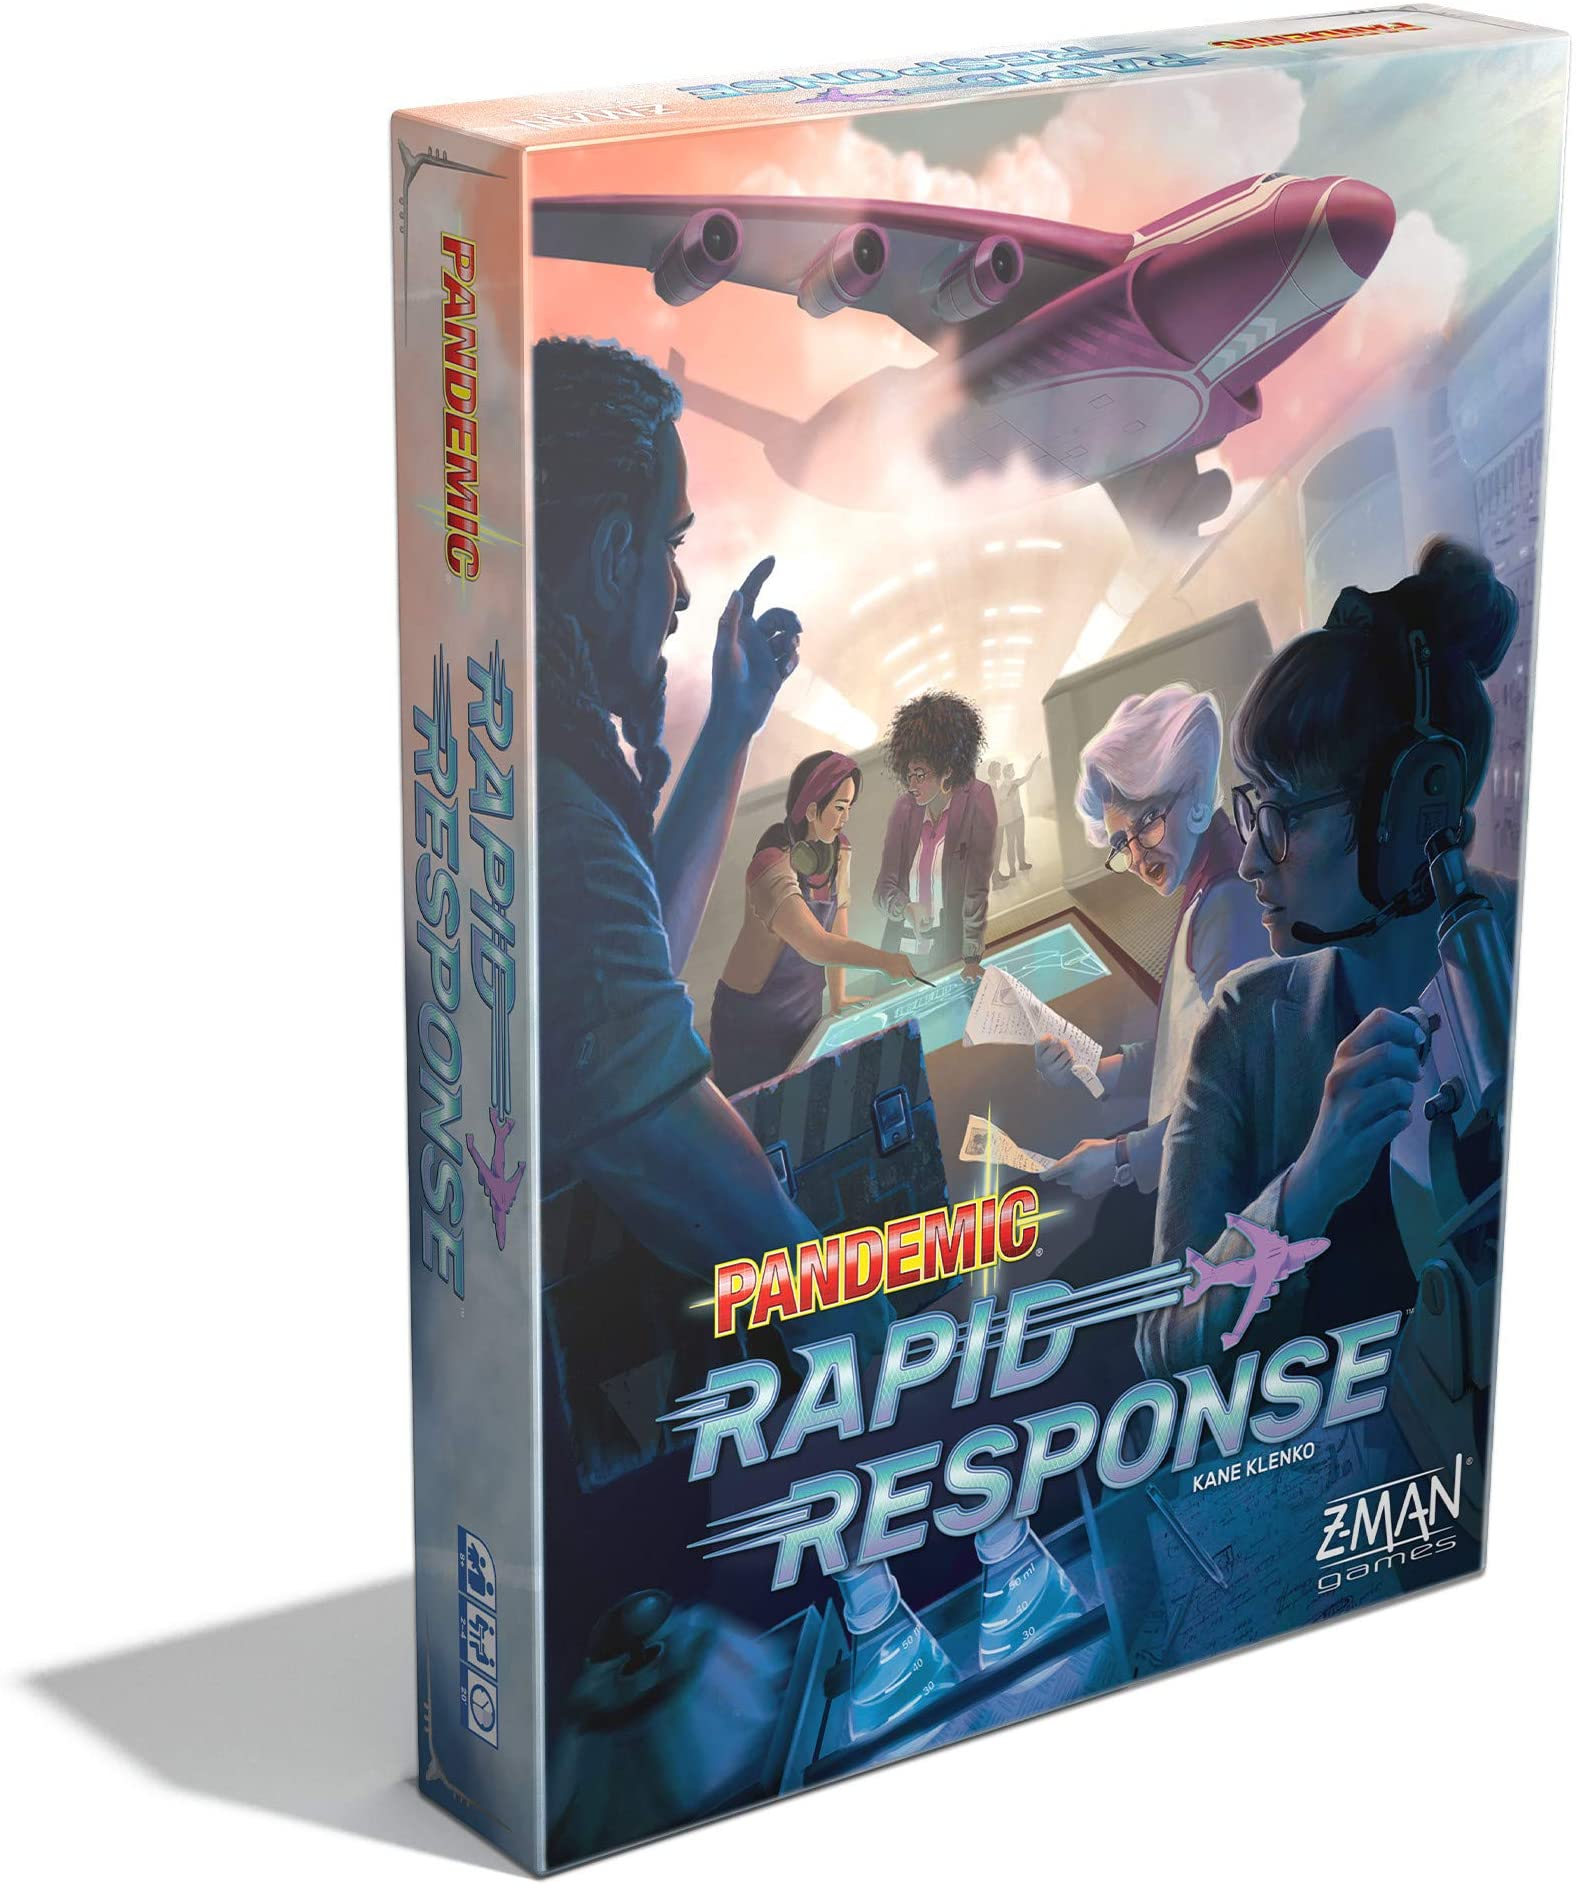 Pandemic Rapid Response Board Game | Family Board Game | Board Game for Adults and Family | Cooperative Board Game | Ages 8+ | 2 to 4 players | Average Playtime 20 minutes | Made by Z-Man Games